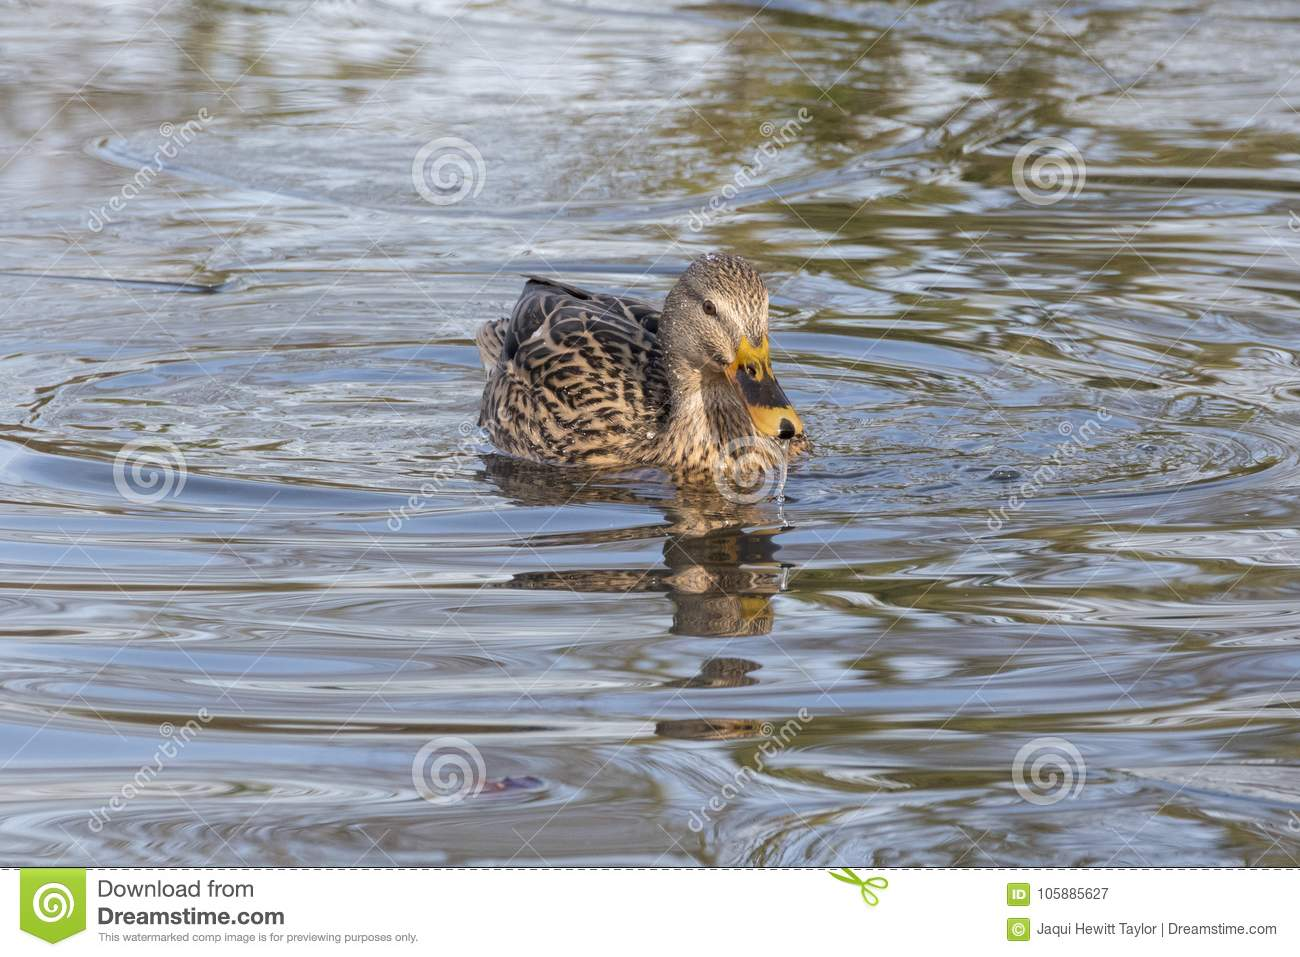 A mallard duck swimming in an icy pond